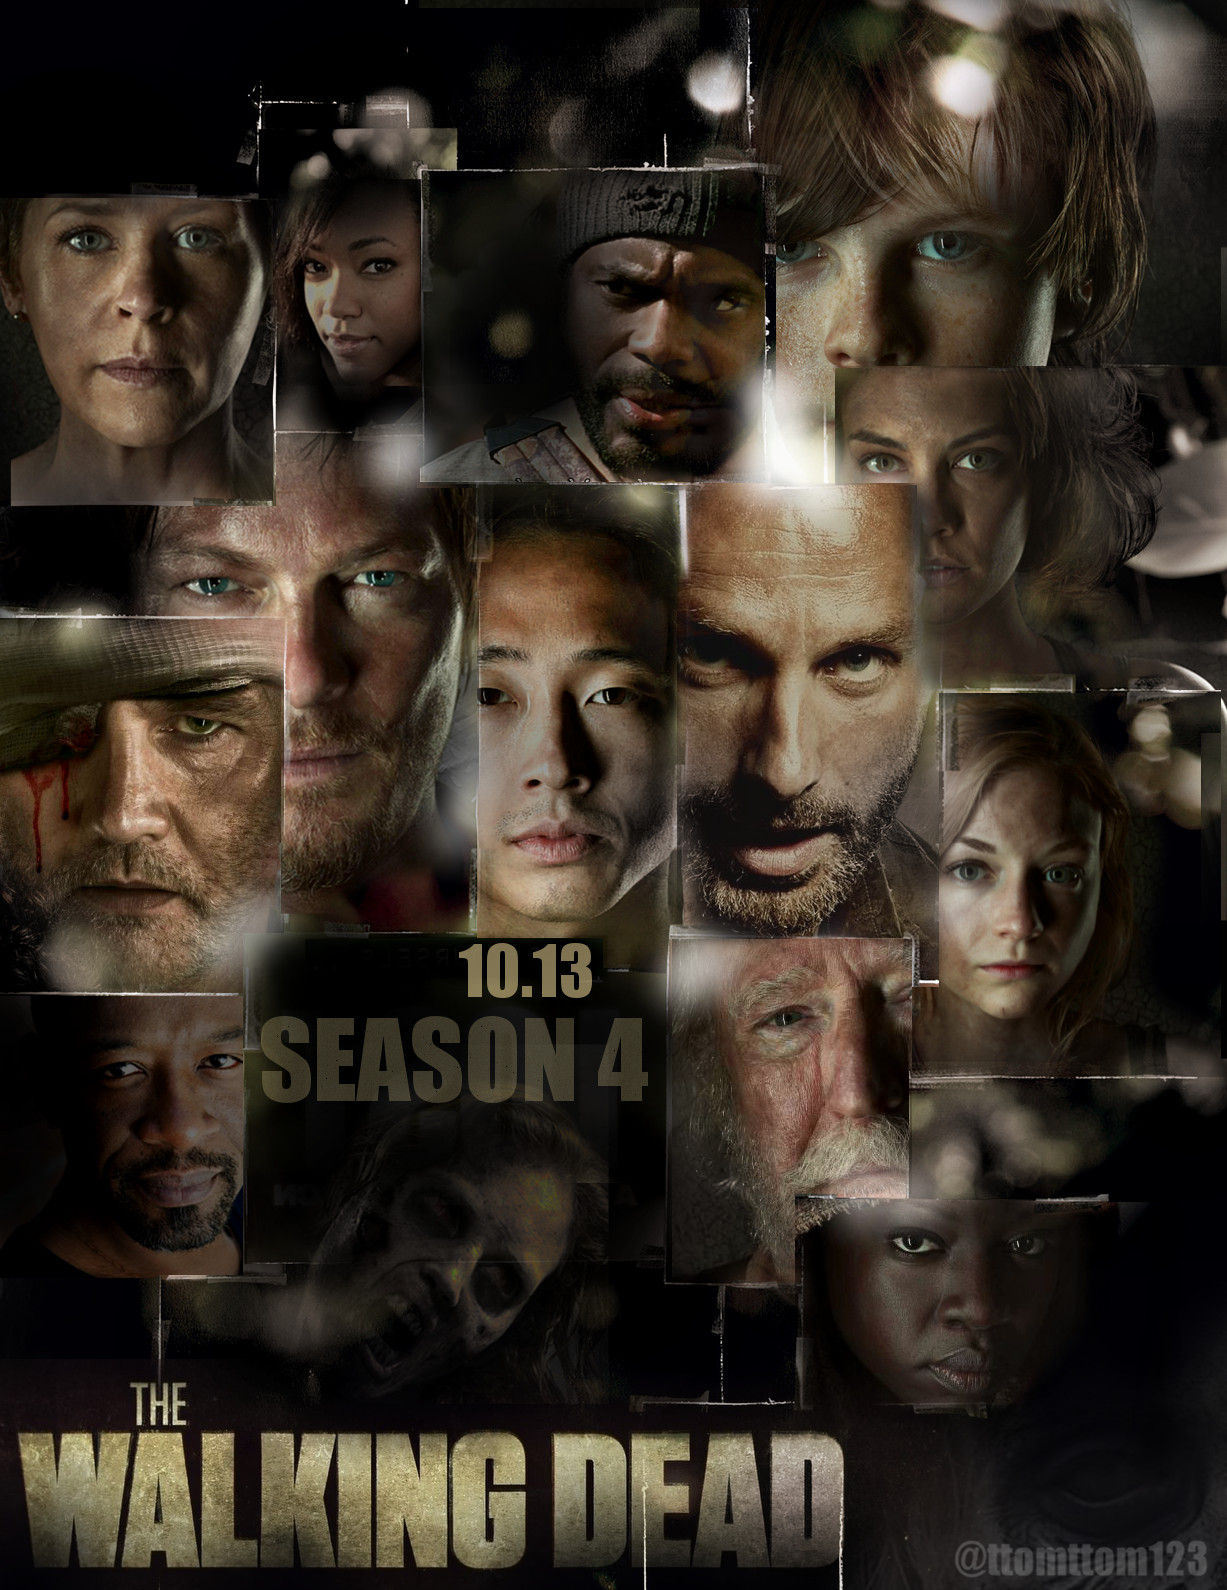 The Walking Dead S04E03 HDTV XviD